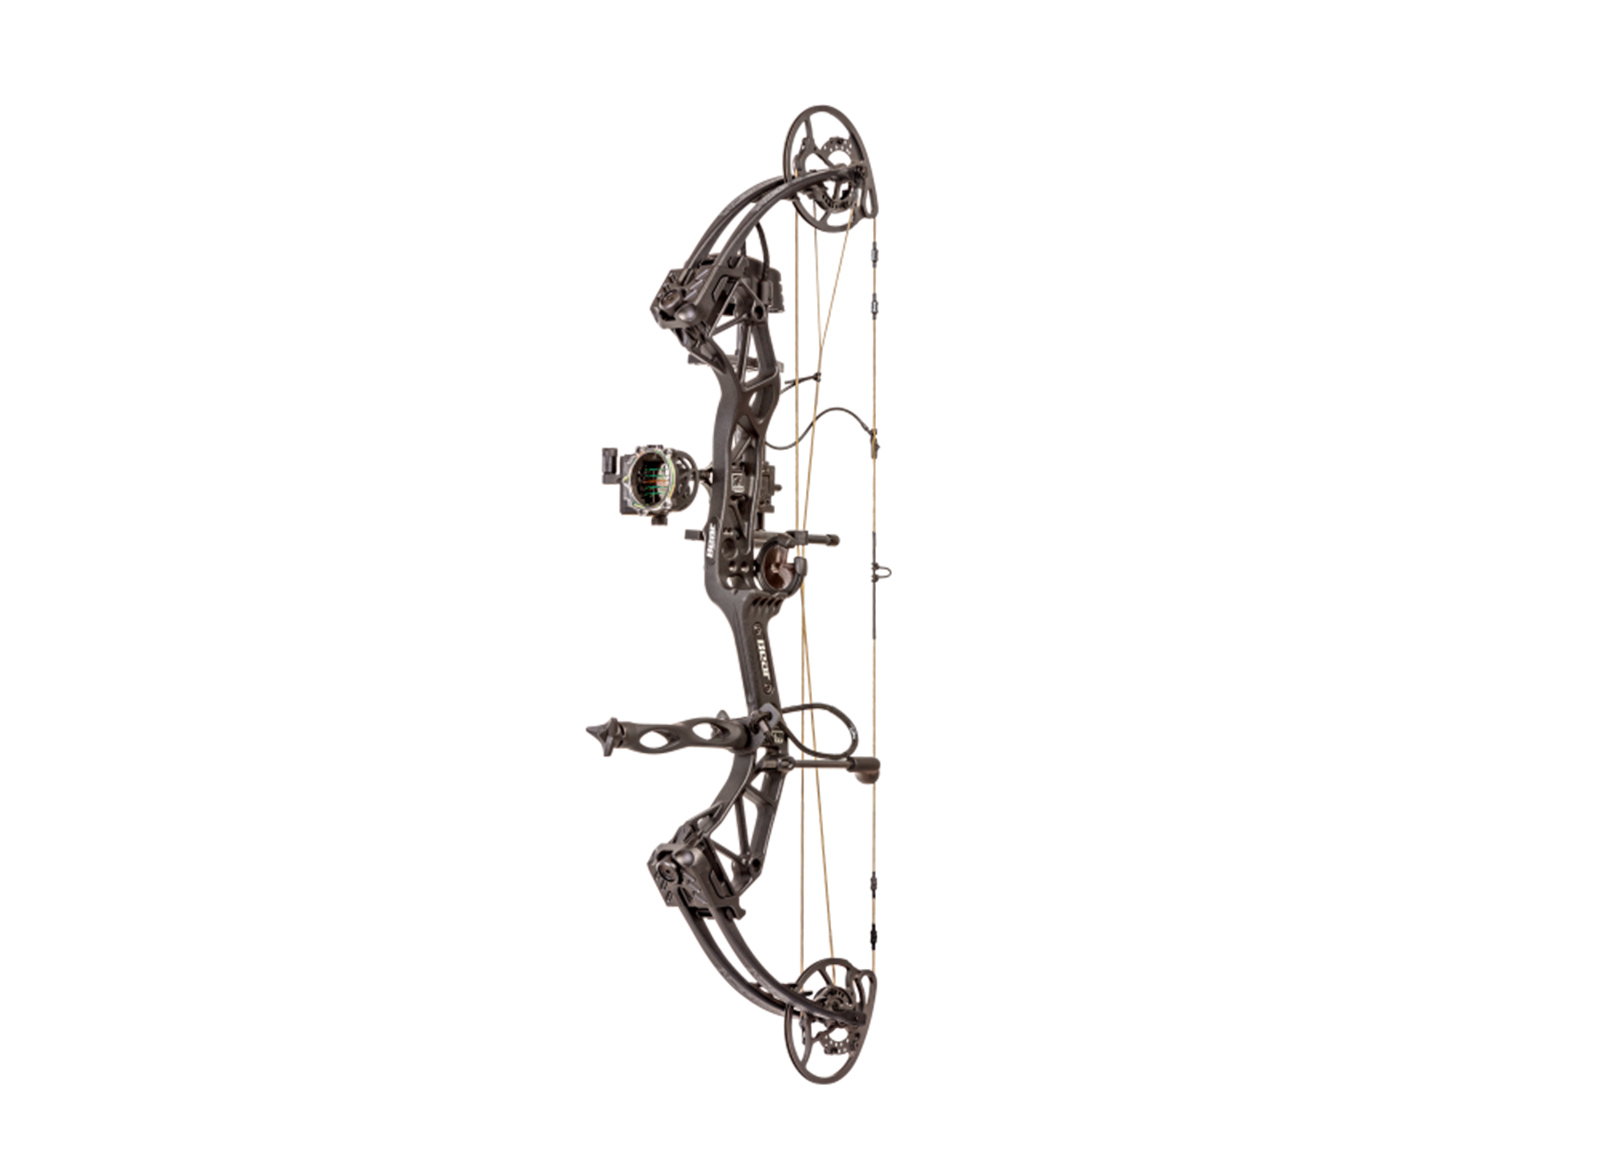 BEAR ARCHERY COMPOUND INCEPTION PACKAGE